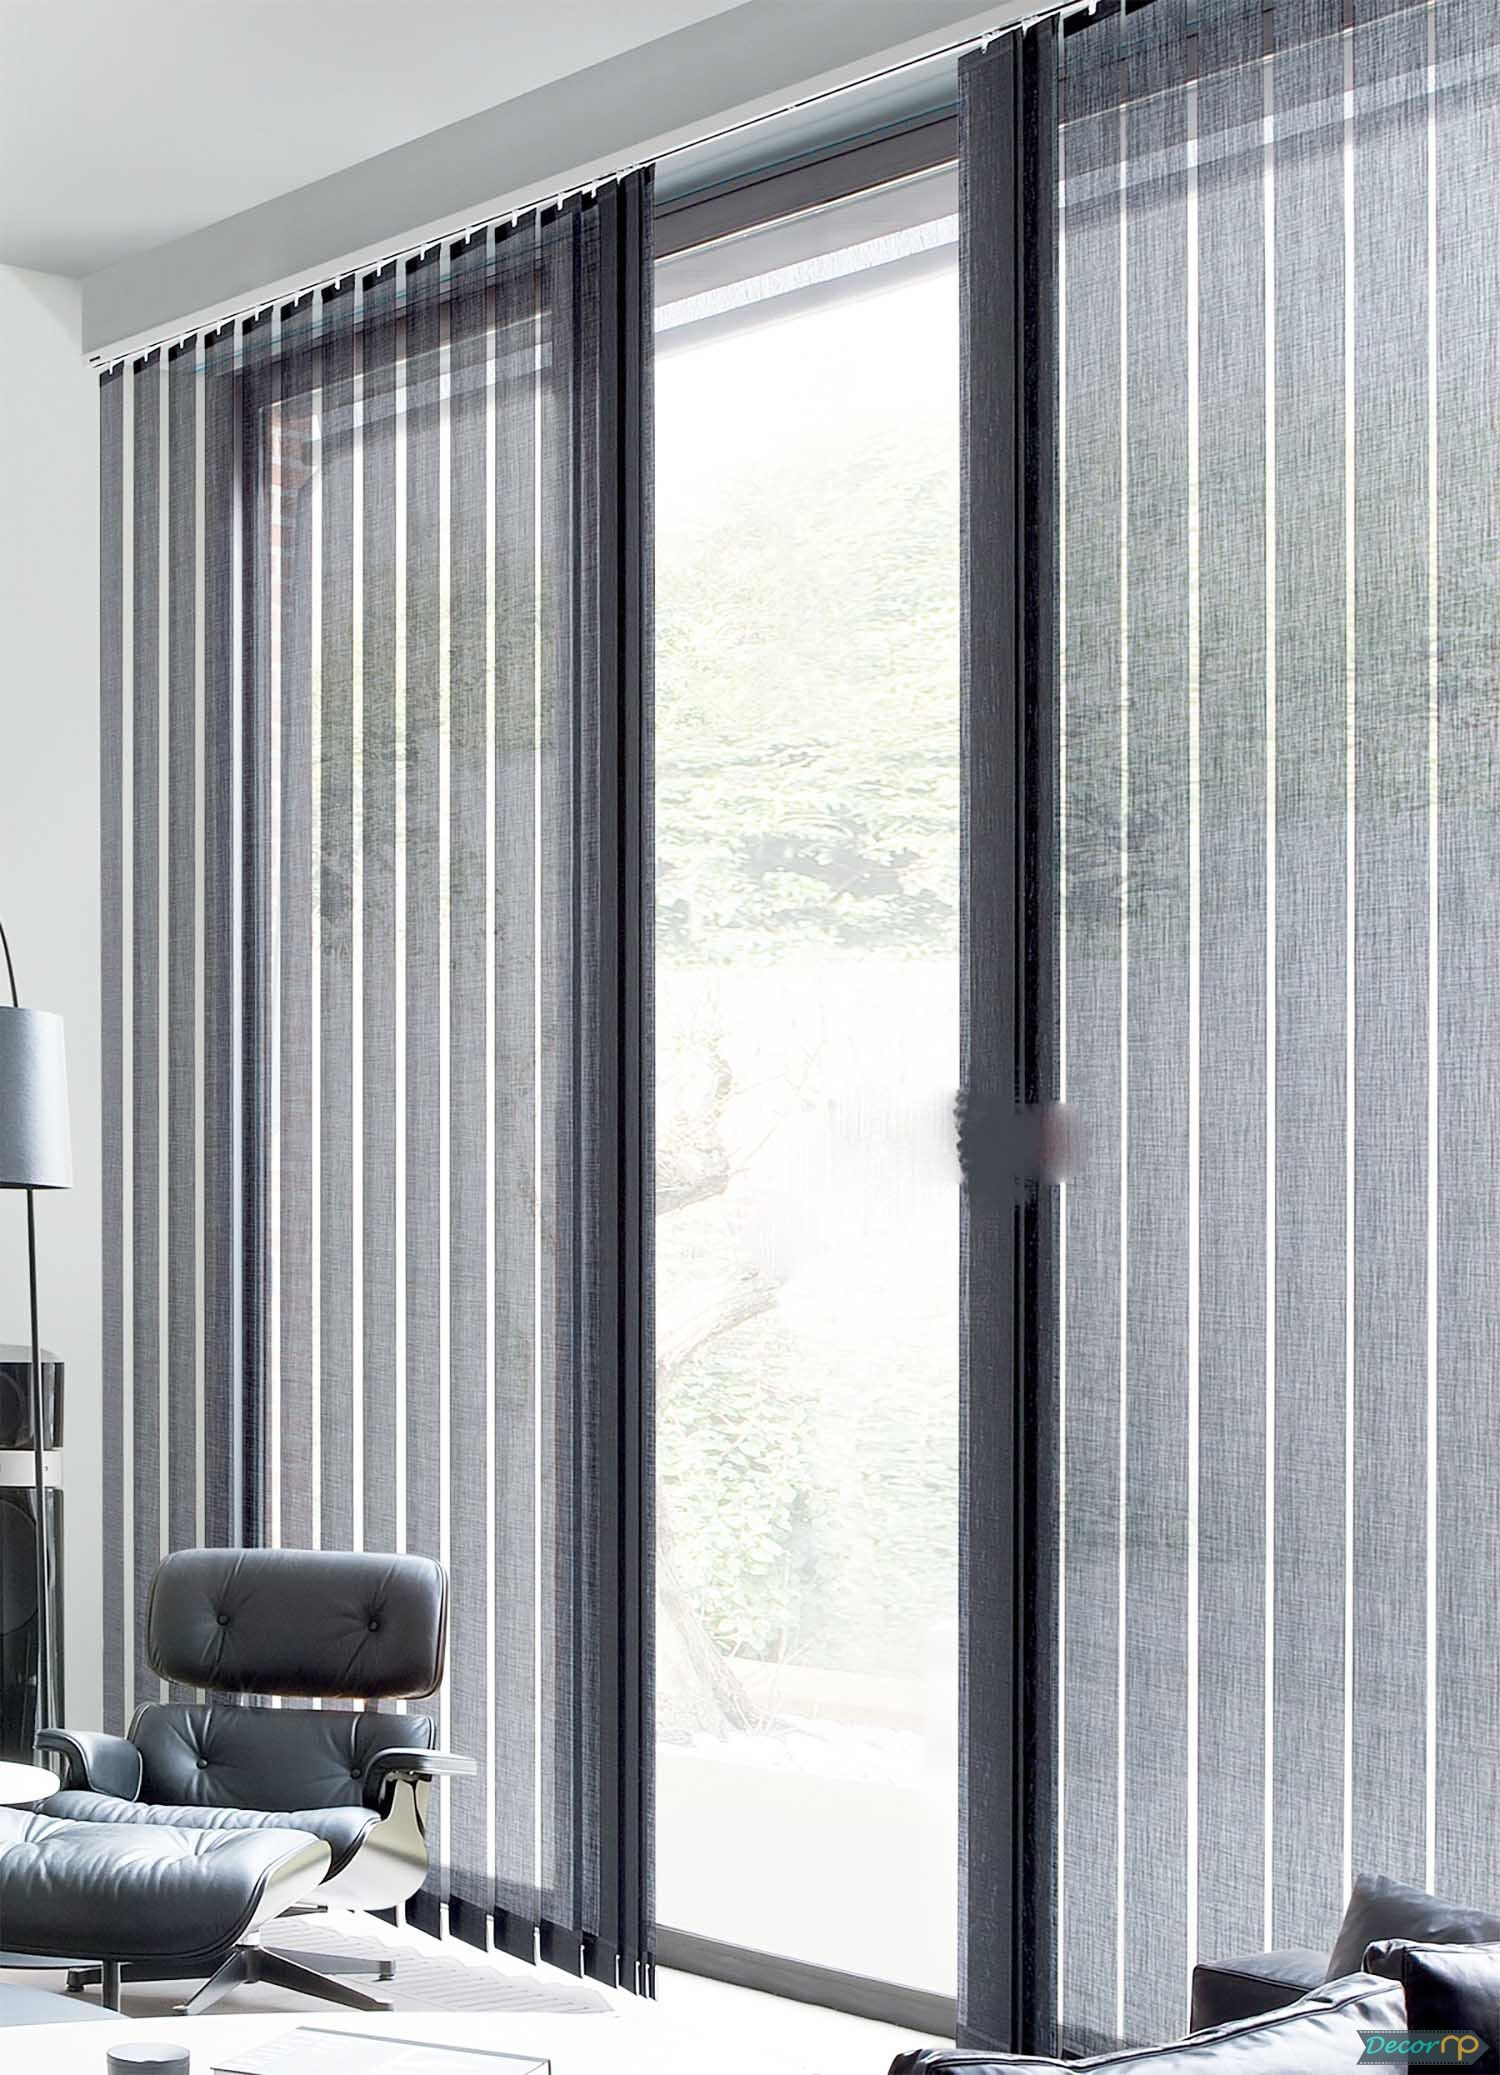 15 Vertical Modern Blinds Style In